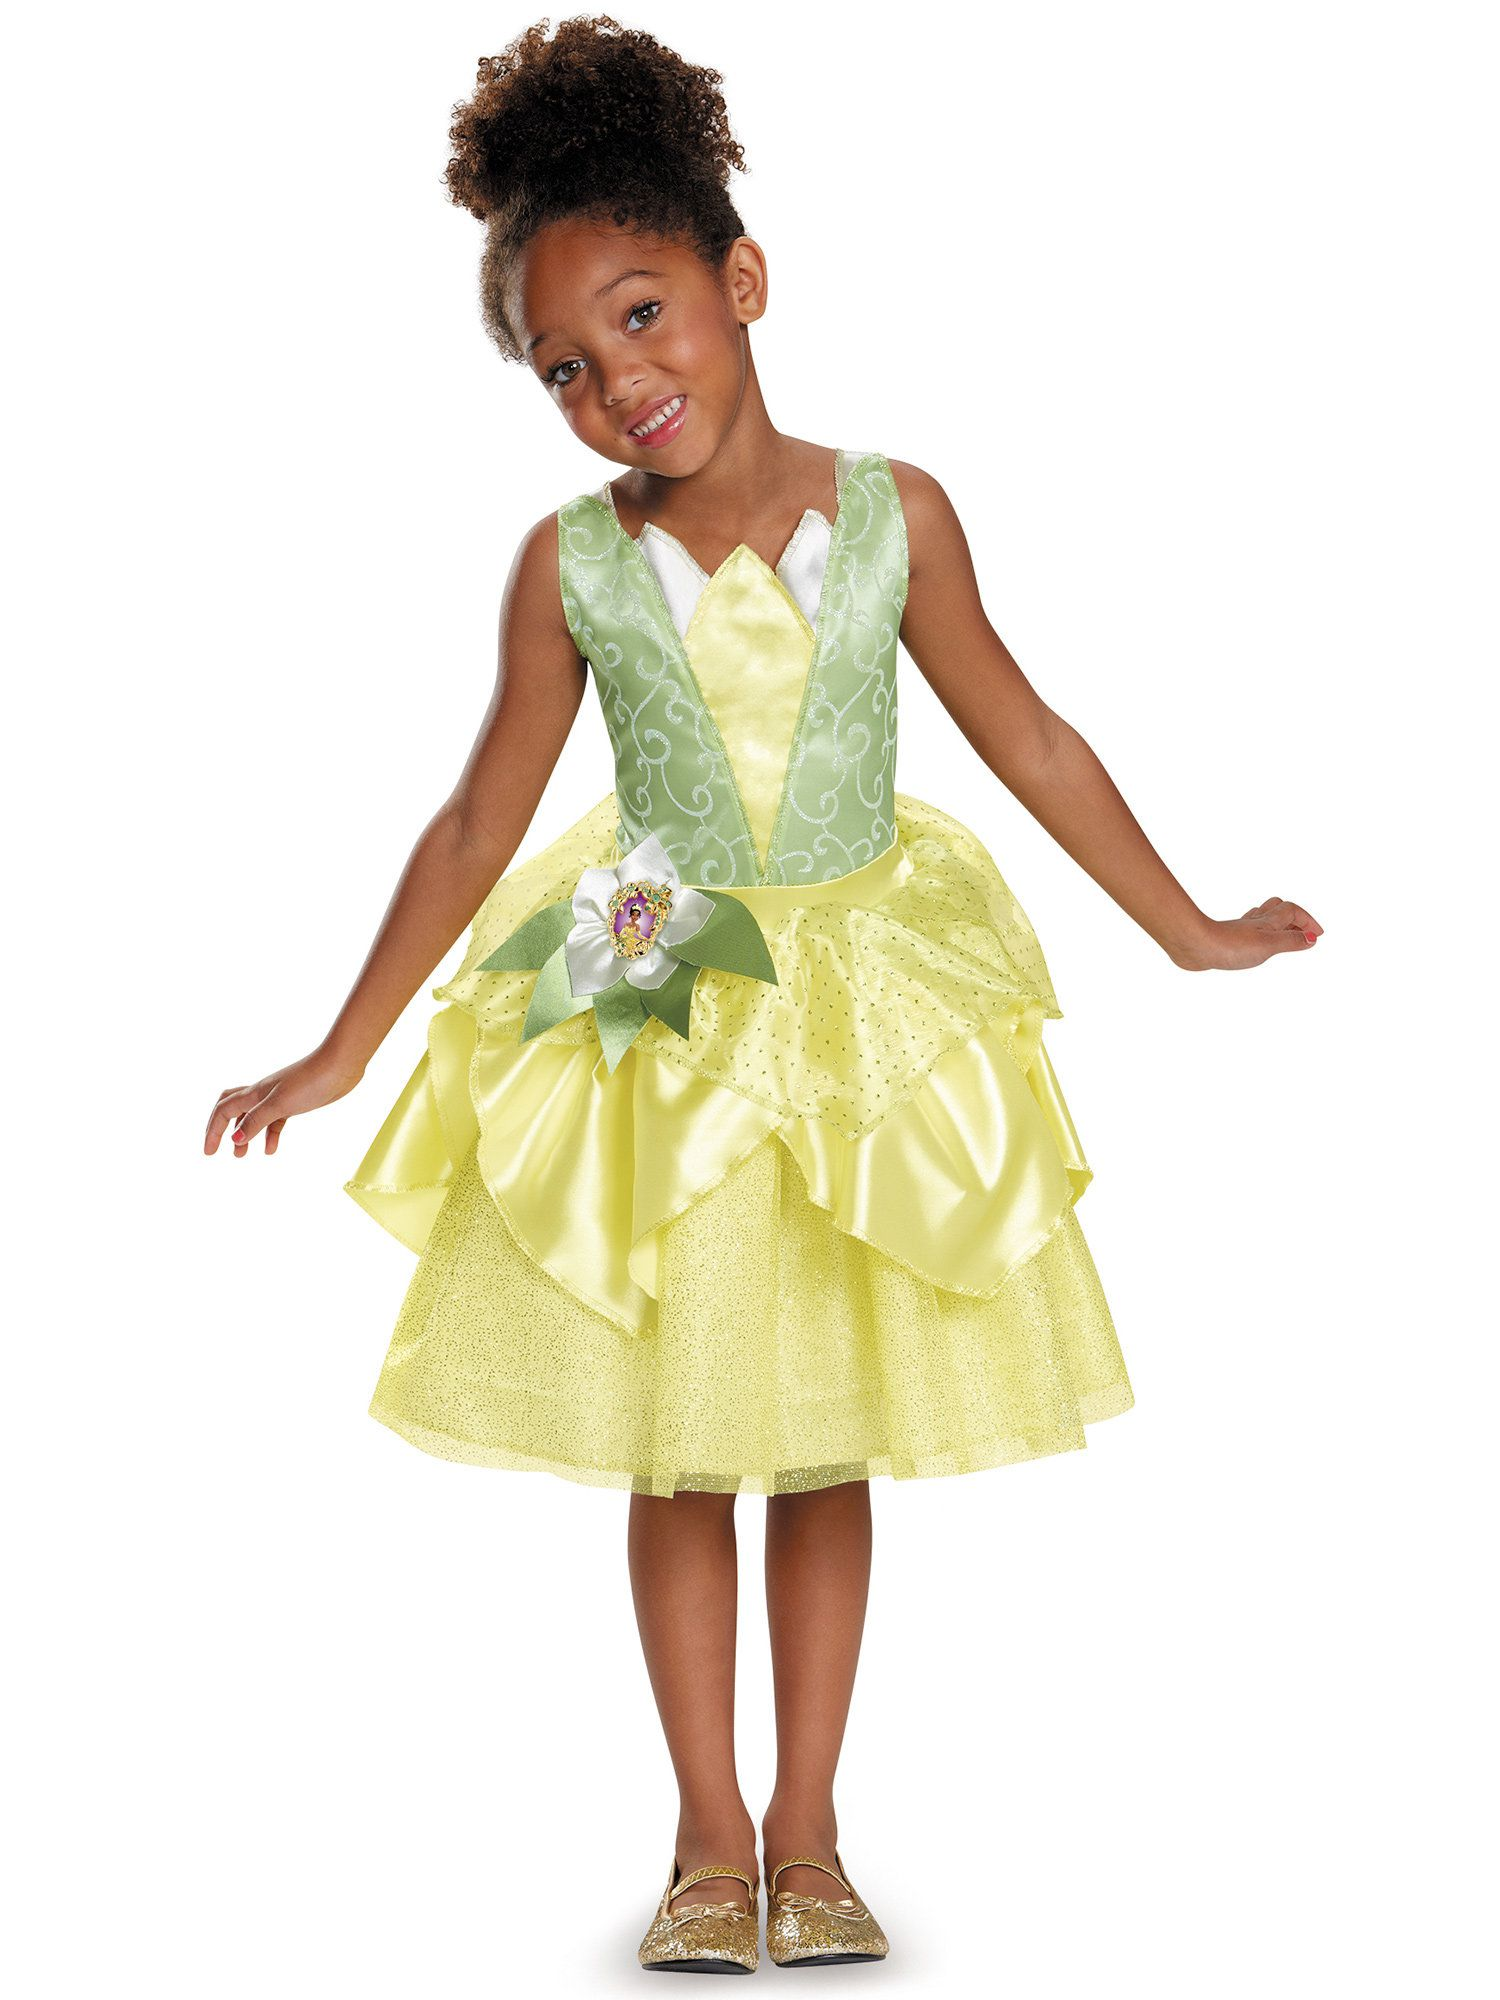 Disneyu0027s The Princess and the Frog Tiana Classic Costume Toddler  sc 1 st  Wholesale Halloween Costumes & Disneyu0027s The Princess u0026 the Frog Girls Tiana Classic Costume ...